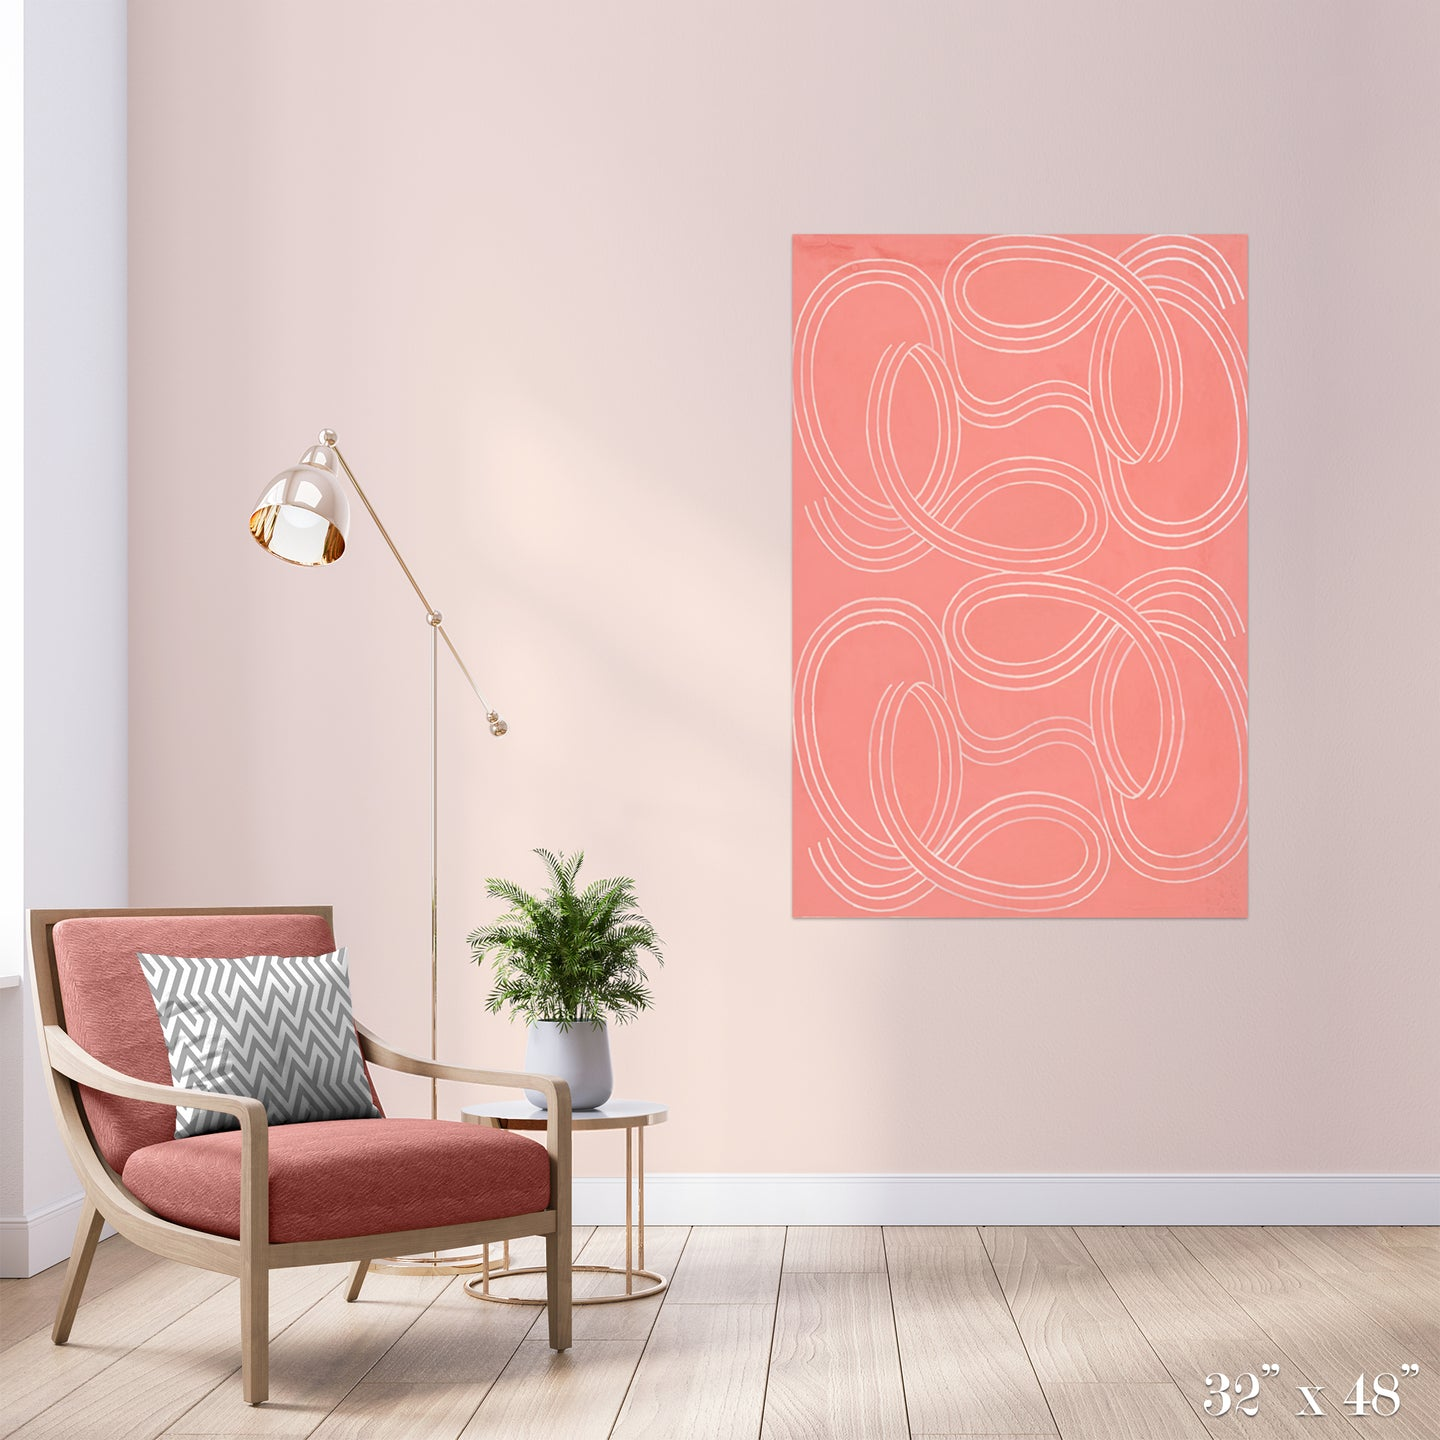 Candy Swirl Colossal Art Print